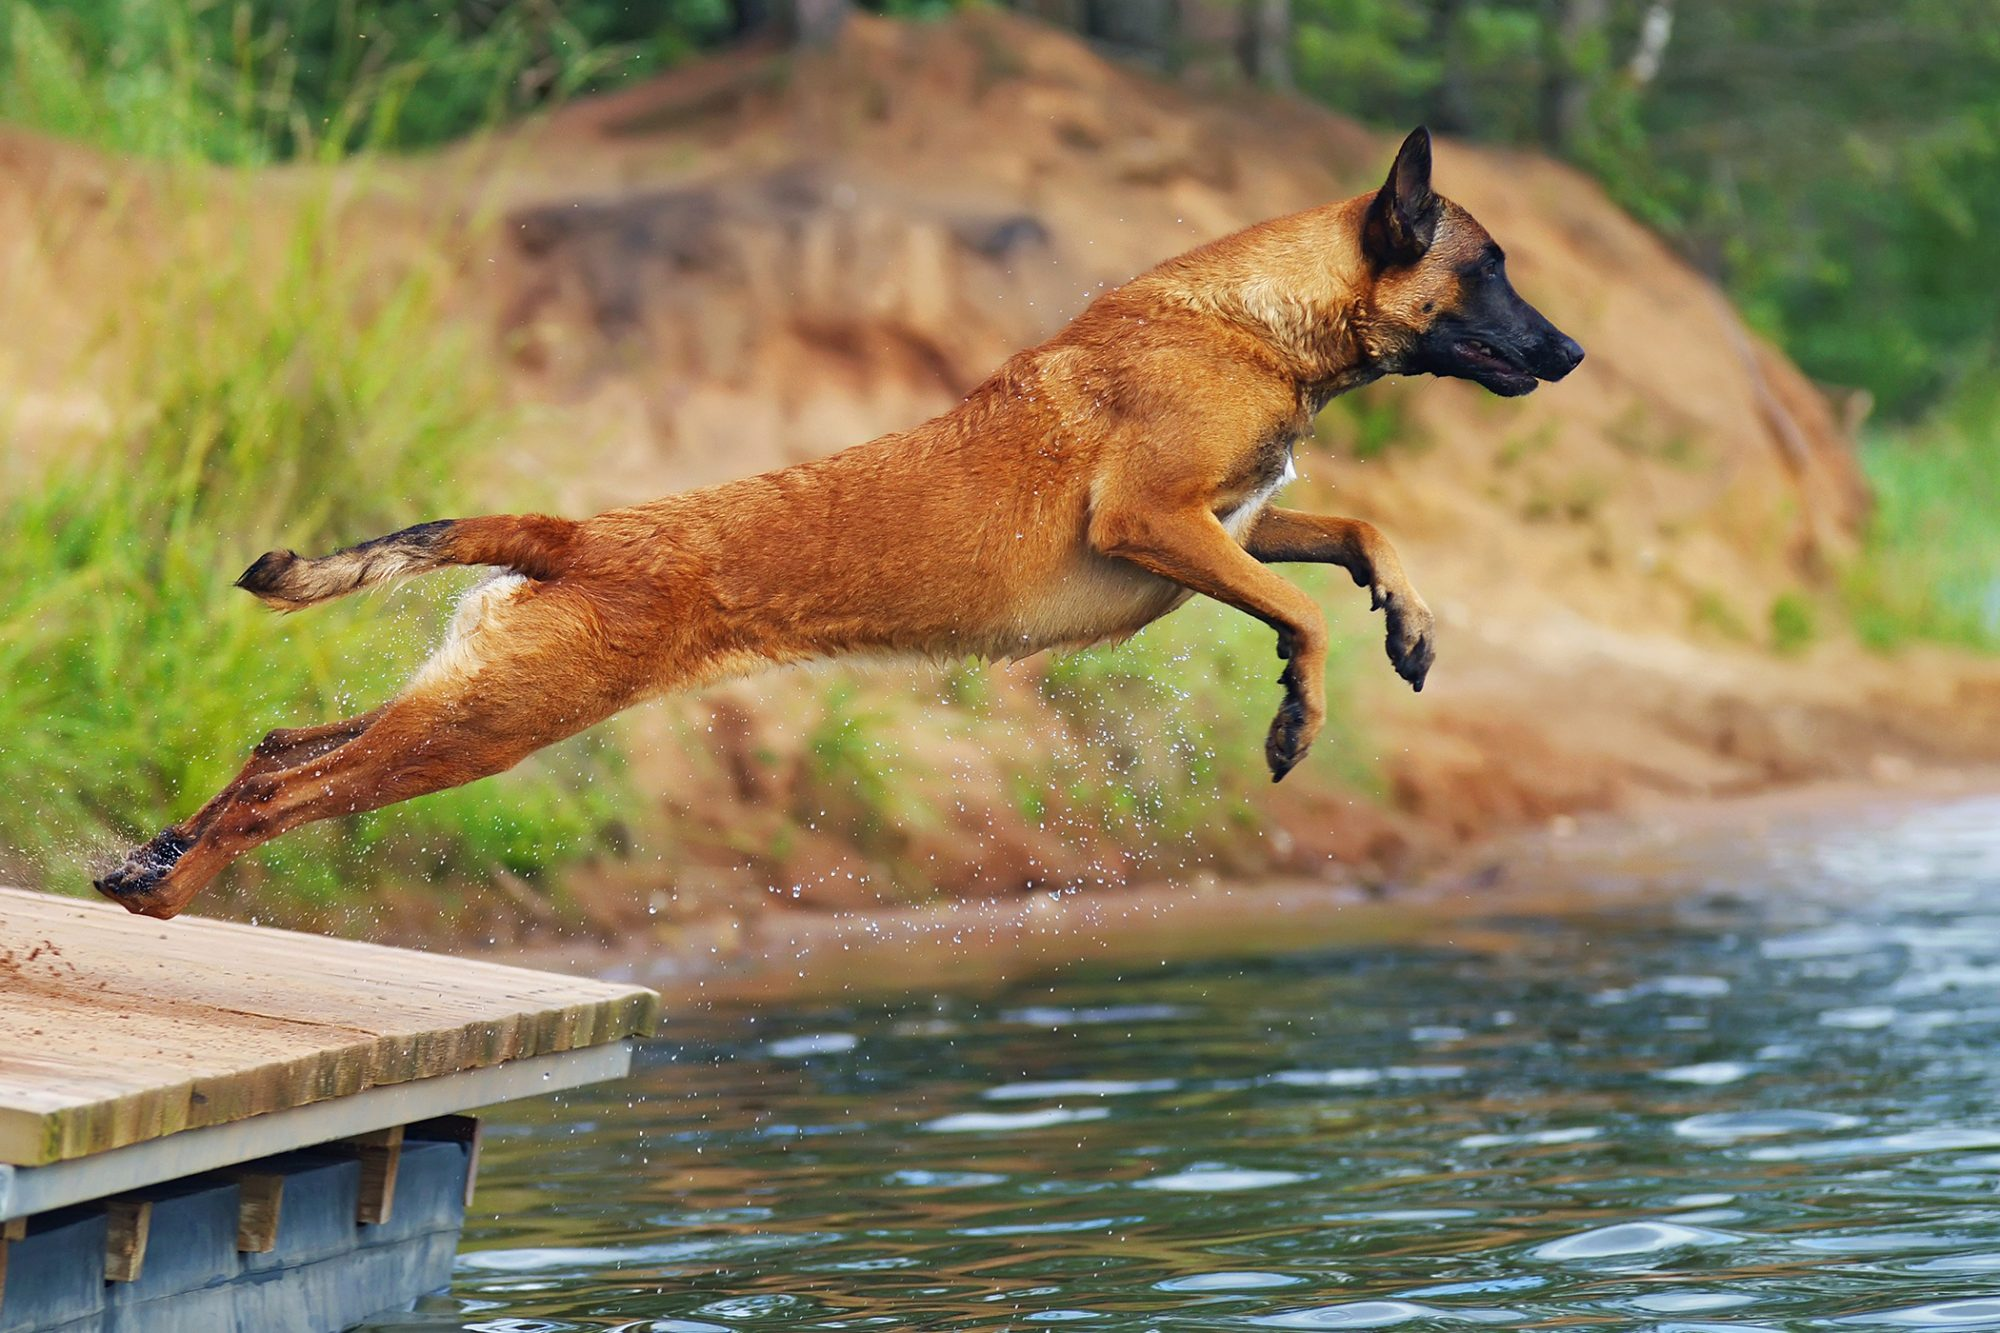 Belgian Malinois jumping off dock into water